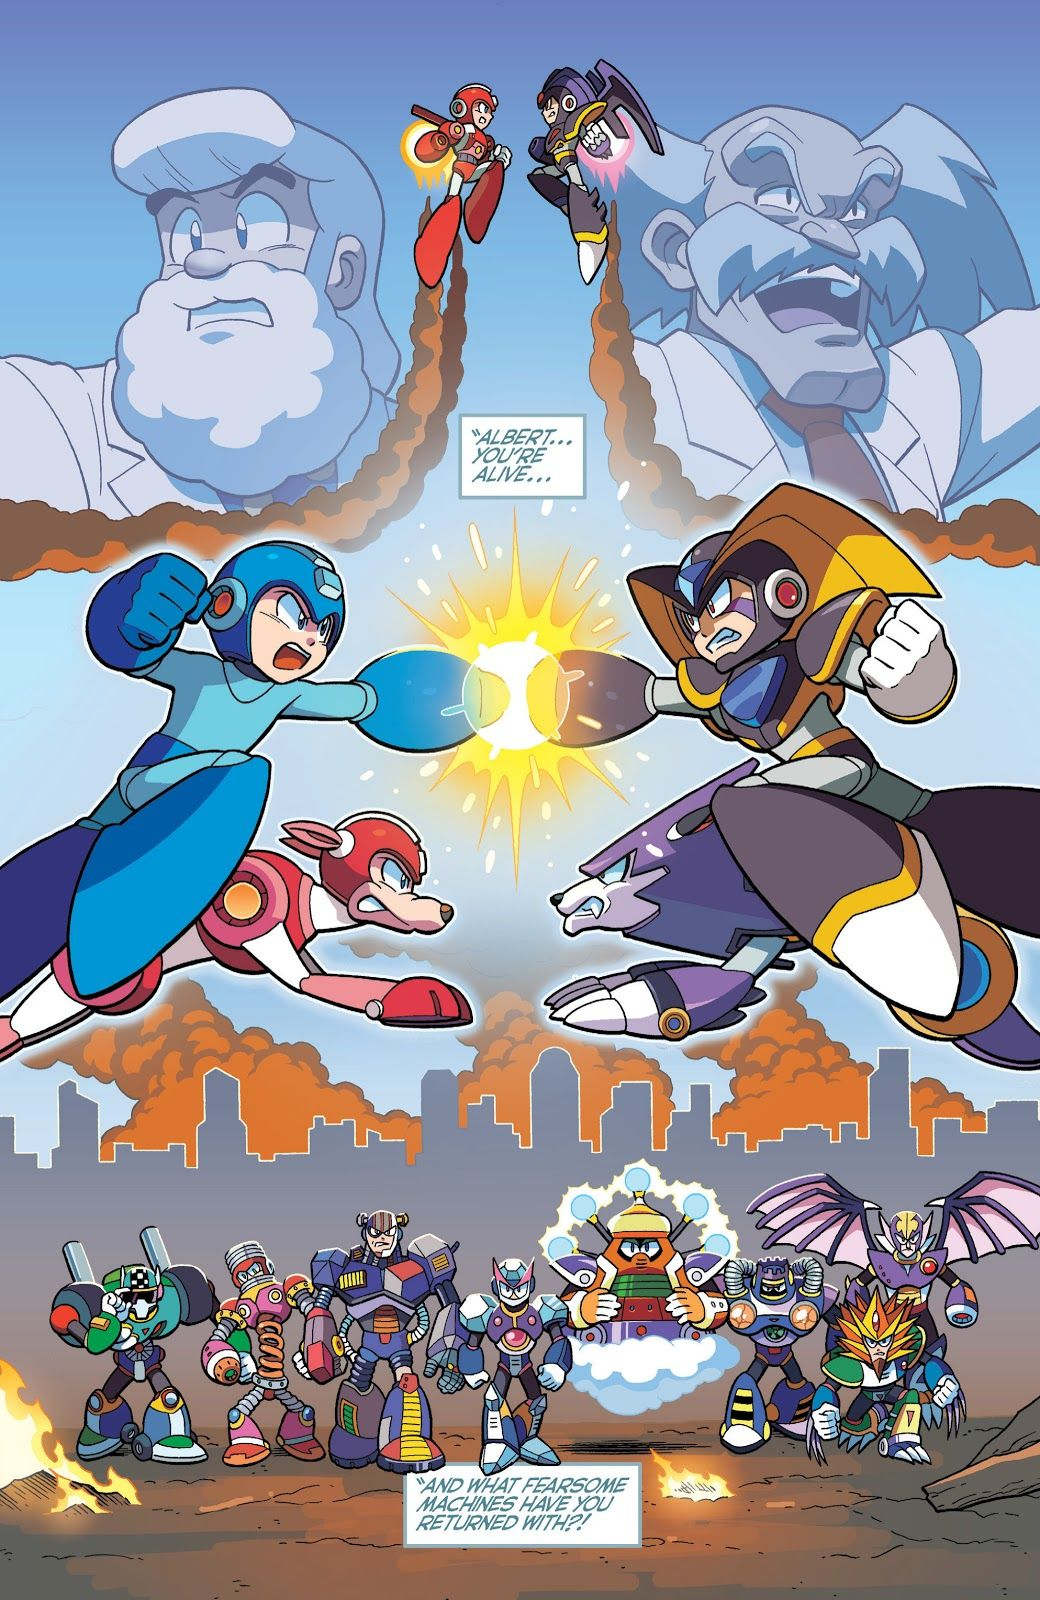 Mega Man Issue #55 - Read Mega Man Issue #55 comic online in